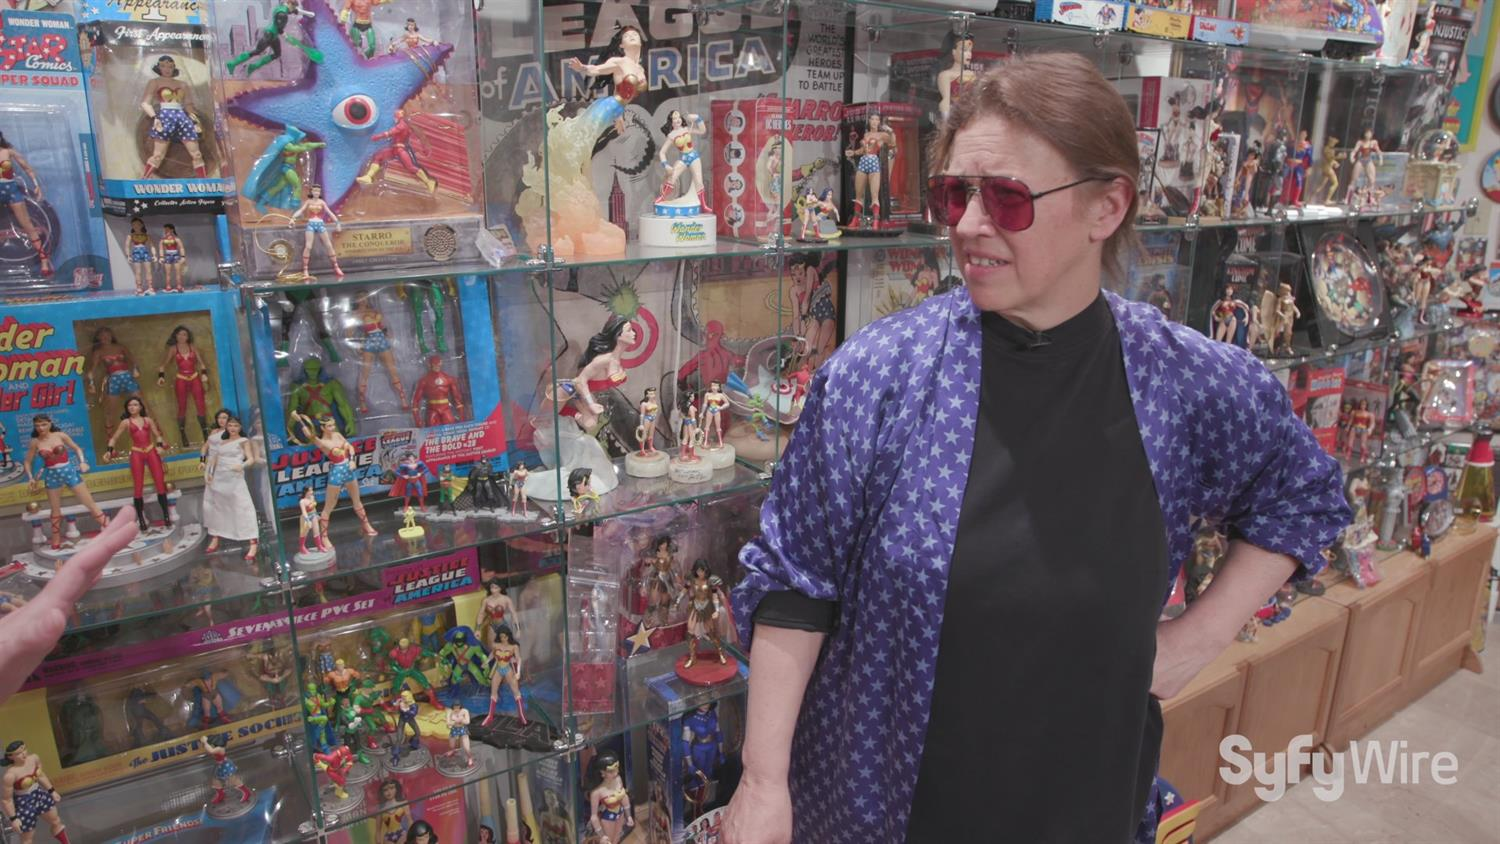 Take a Tour of the Wonder Woman Museum